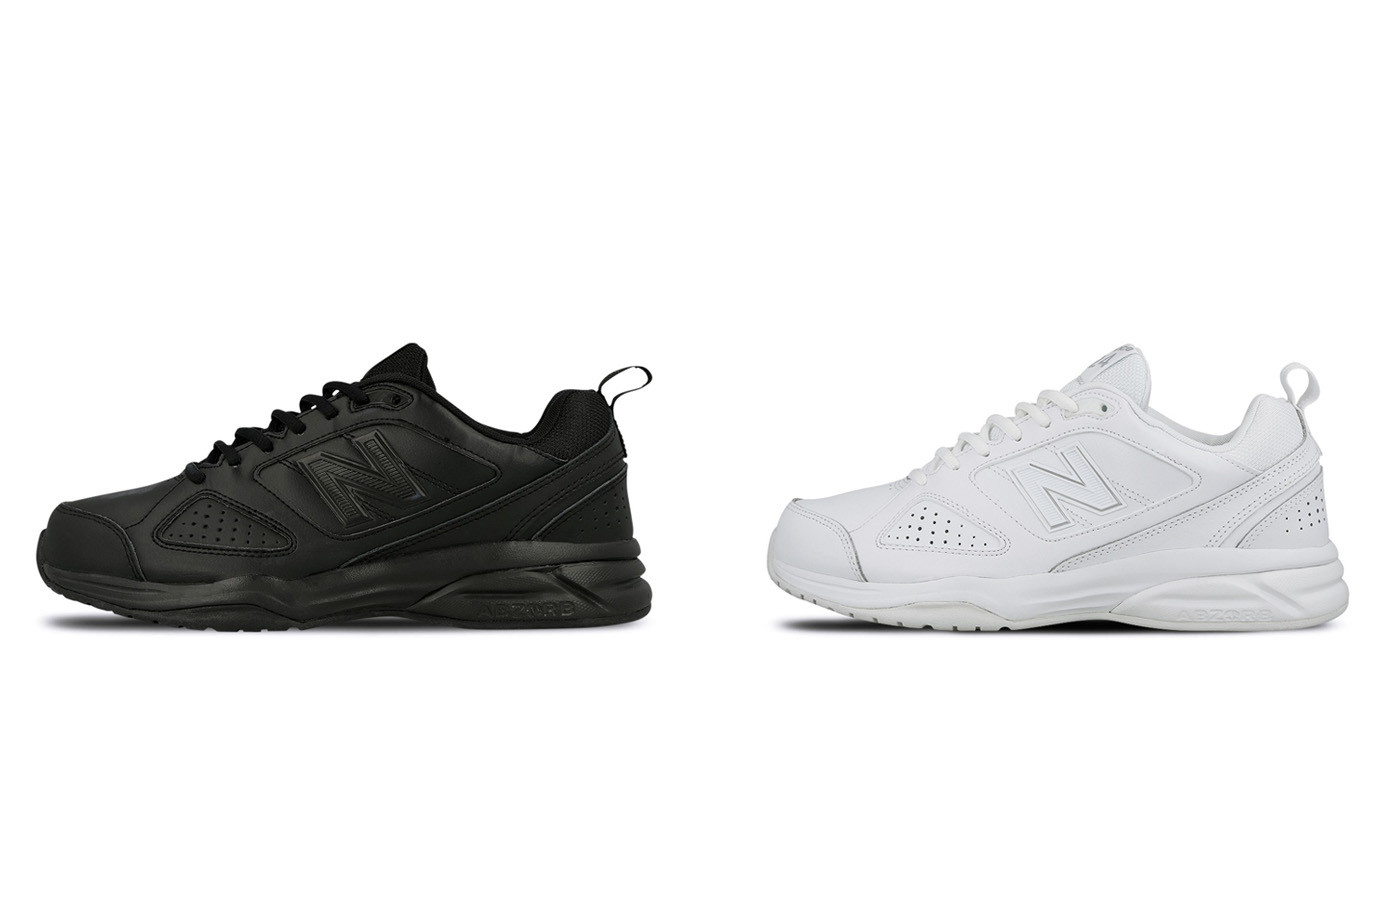 New Balance MX 624 Chunky Dad Sneakers